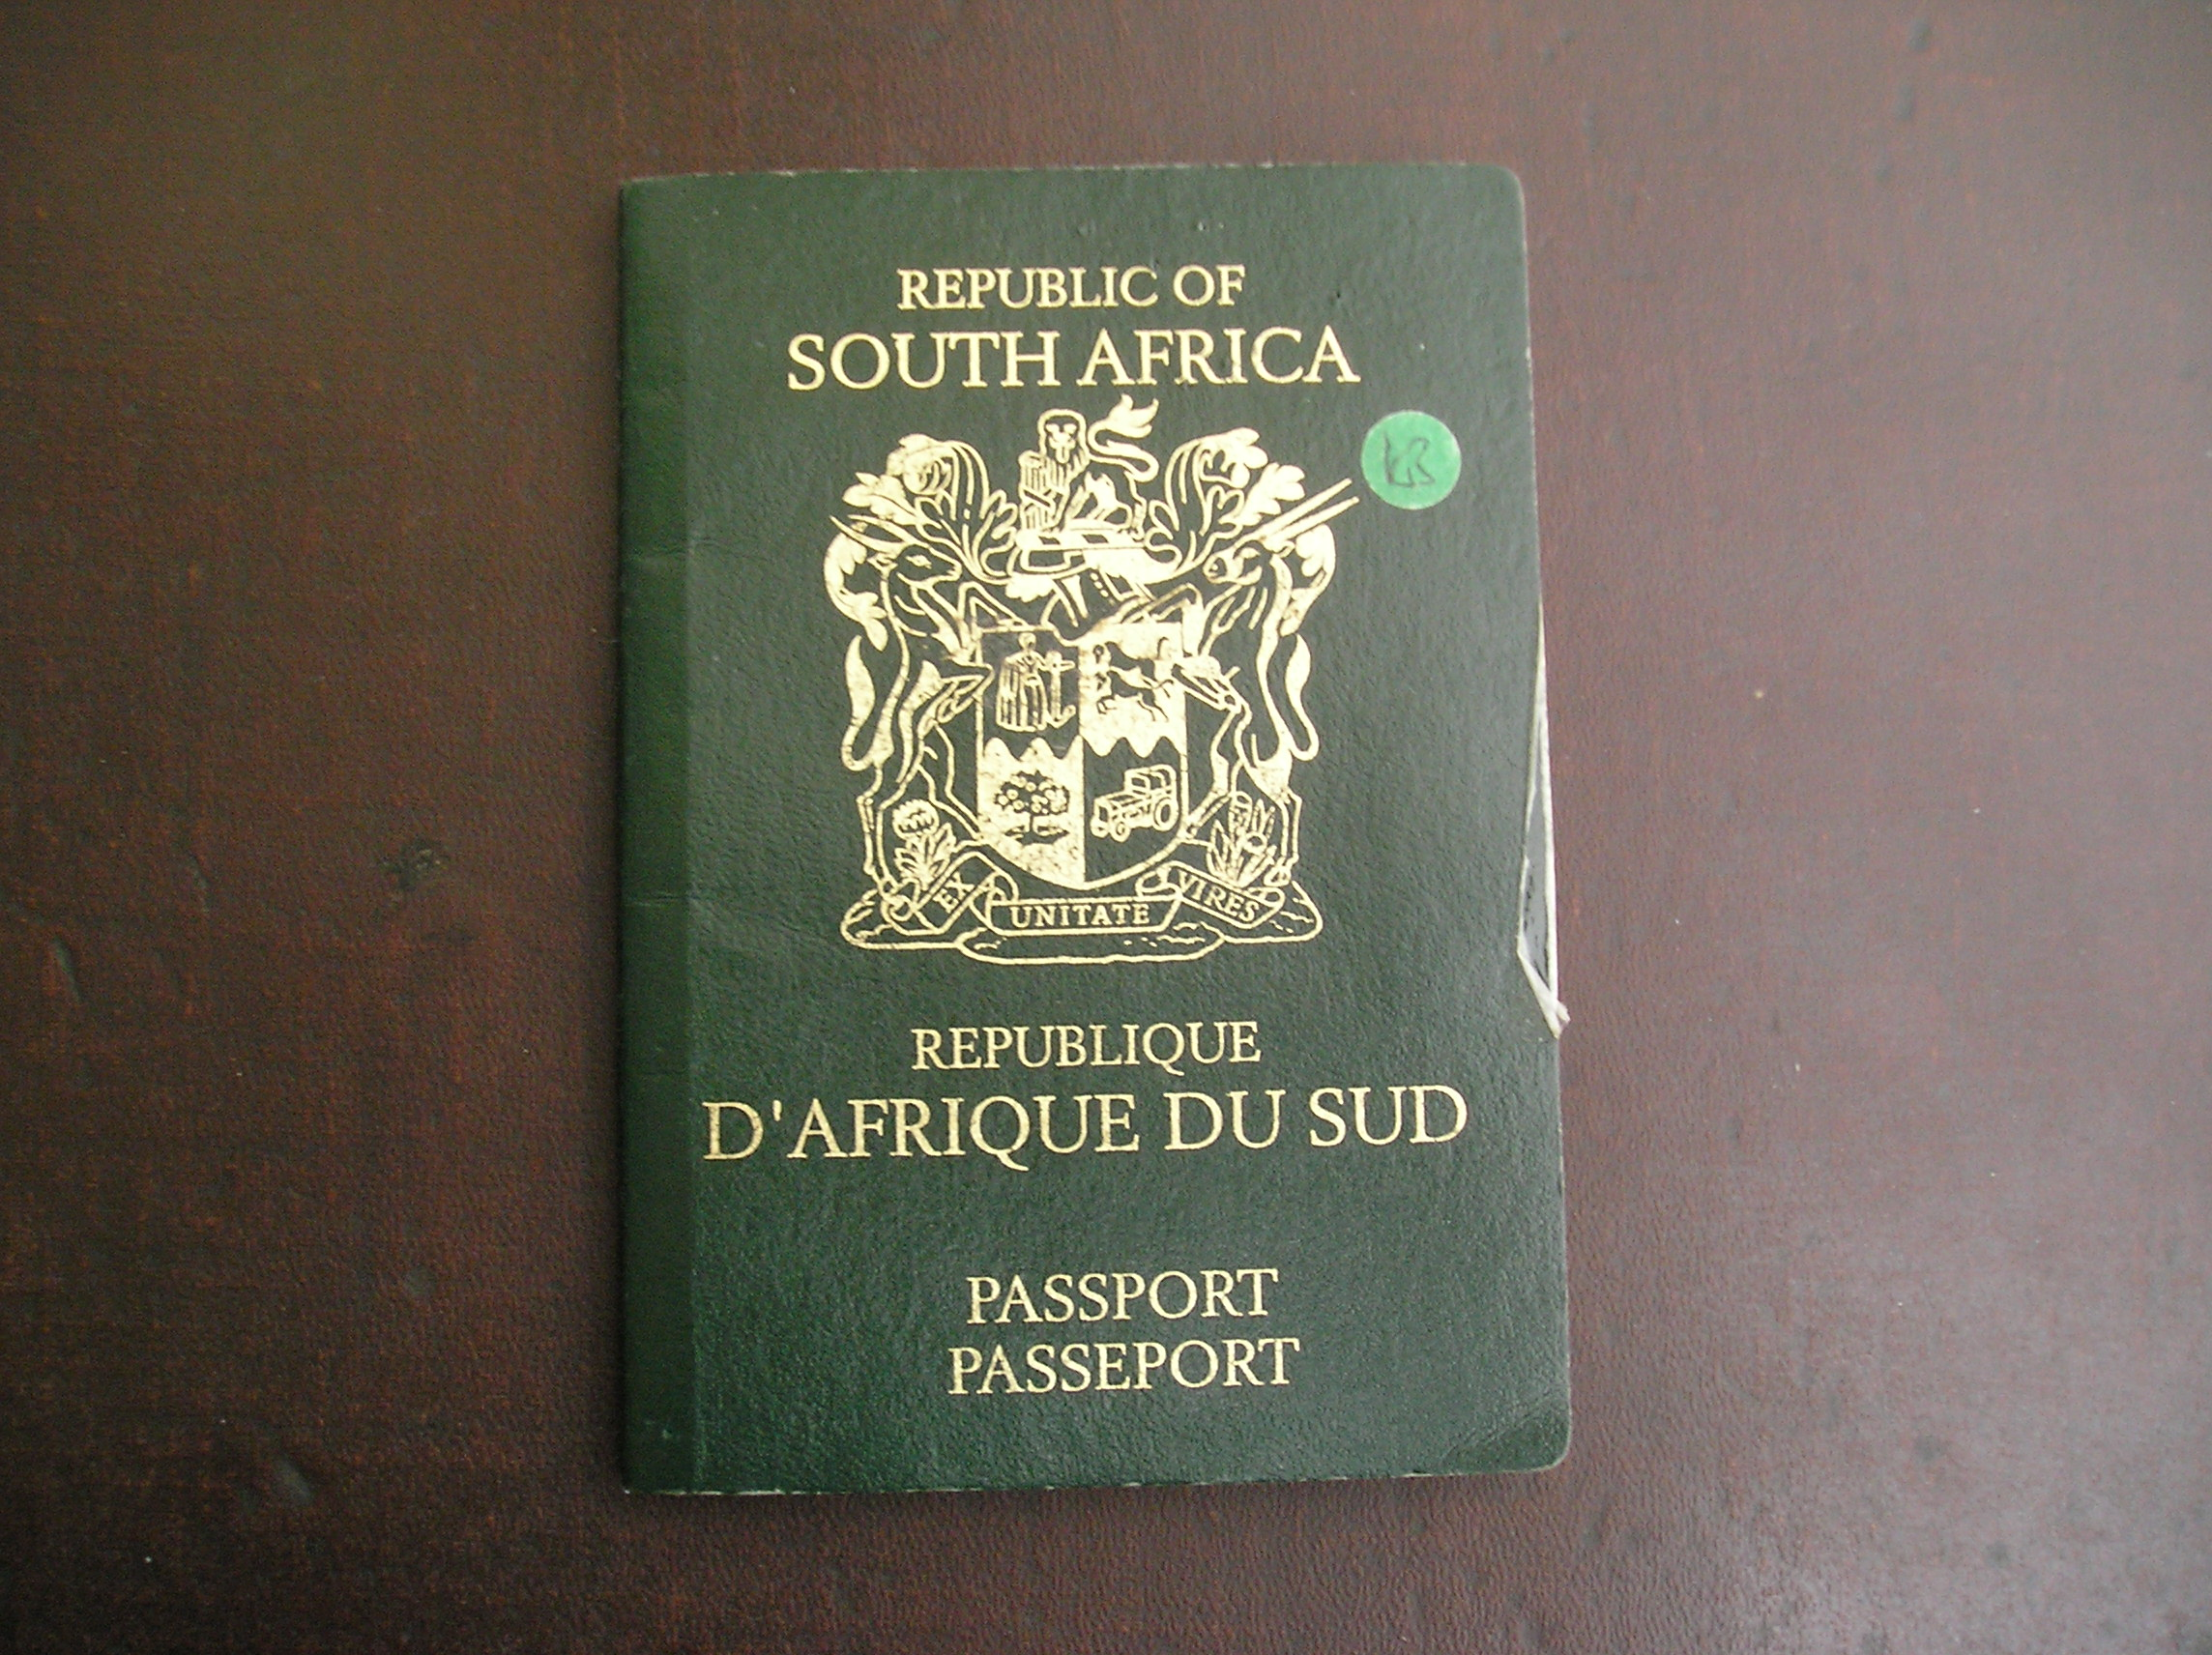 South africa home affairs launched a crackdown targeting zimbabweans south africa home affairs launched a crackdown targeting zimbabweans who fraudulently obtained south african passports falaconquin